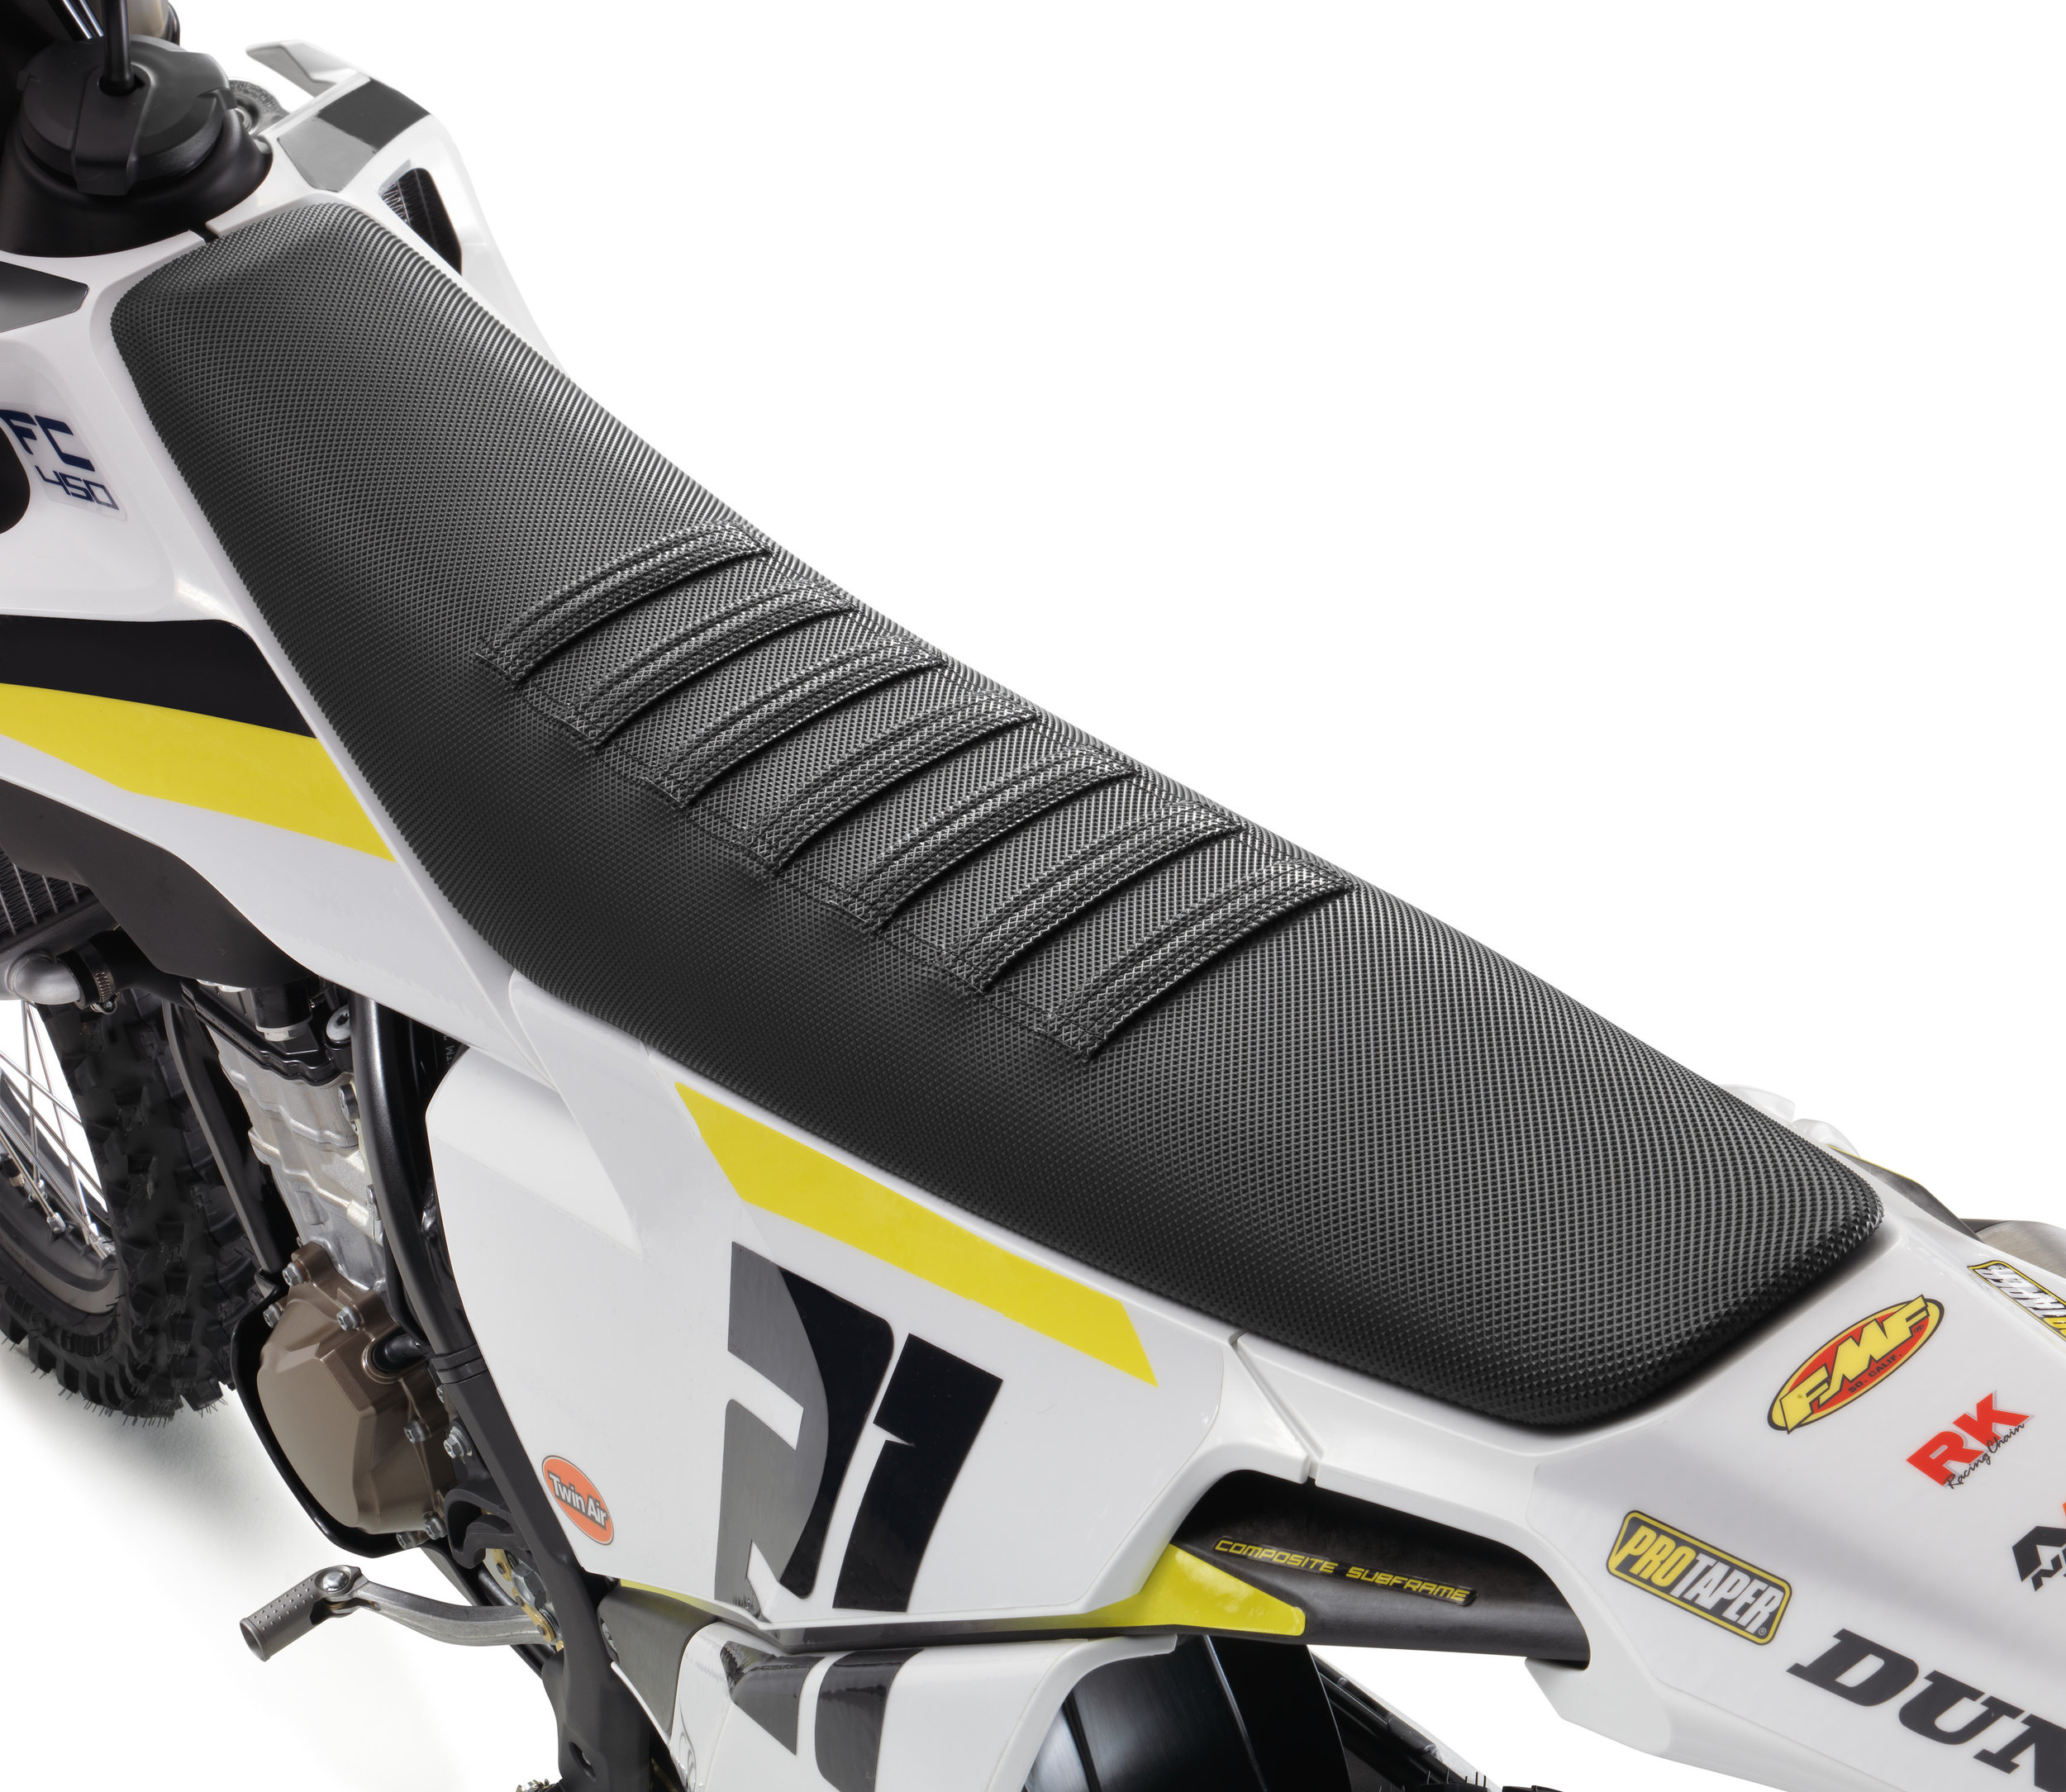 New racing inspired ribbed seat cover.